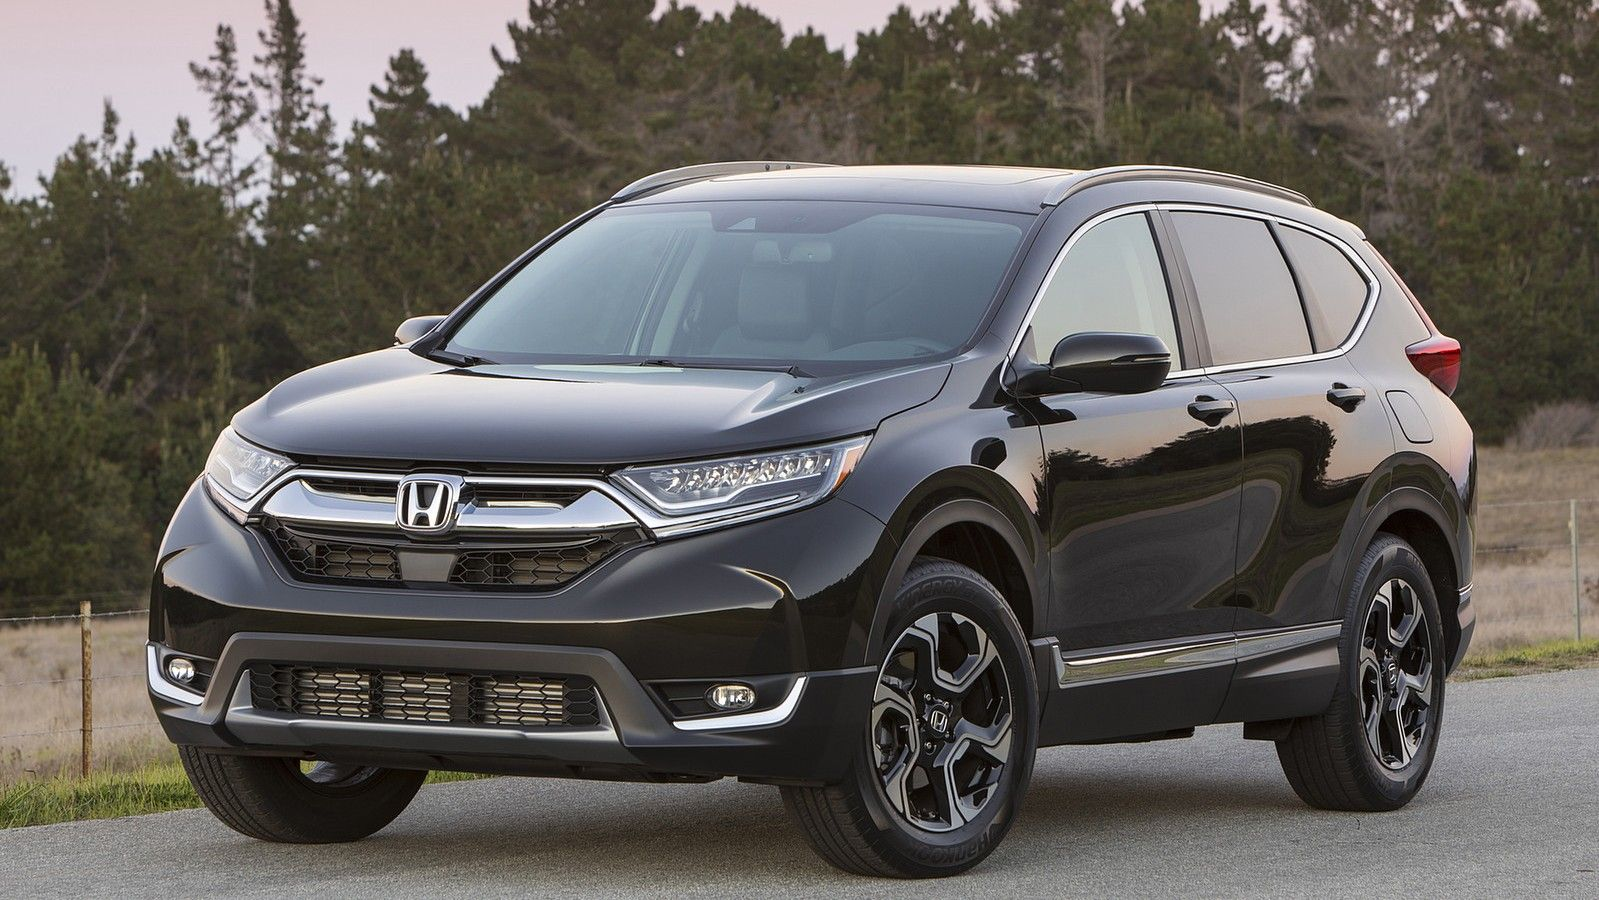 2019 honda crv front three quarters